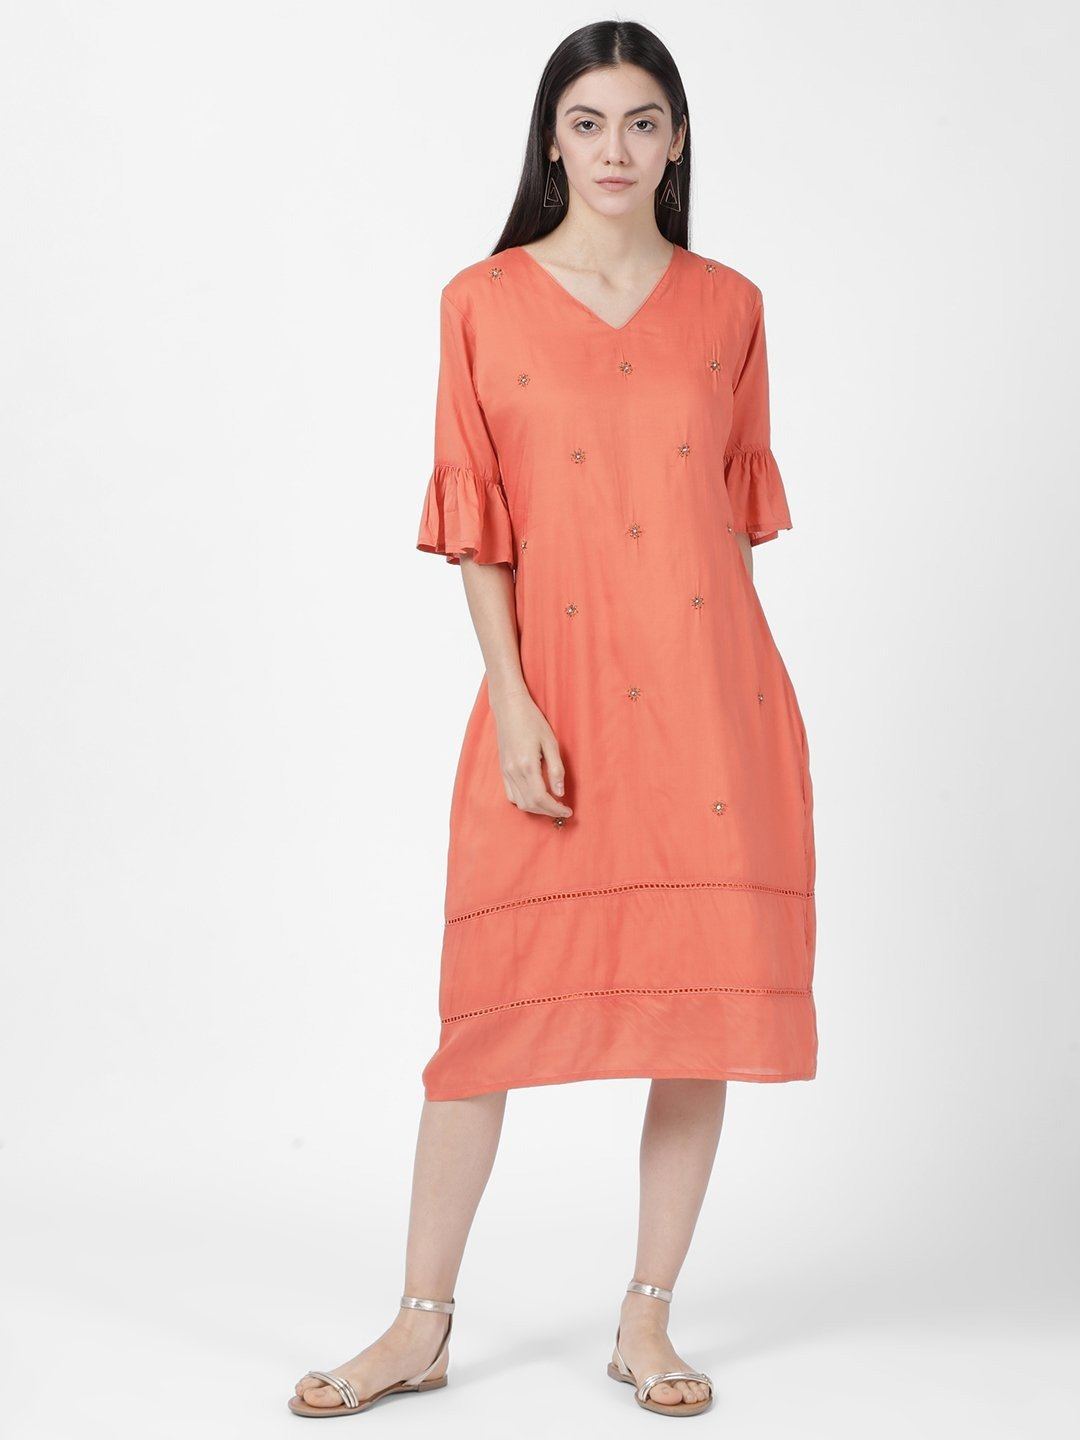 CORAL CONTRAST HEM DRESS - Rossbelle